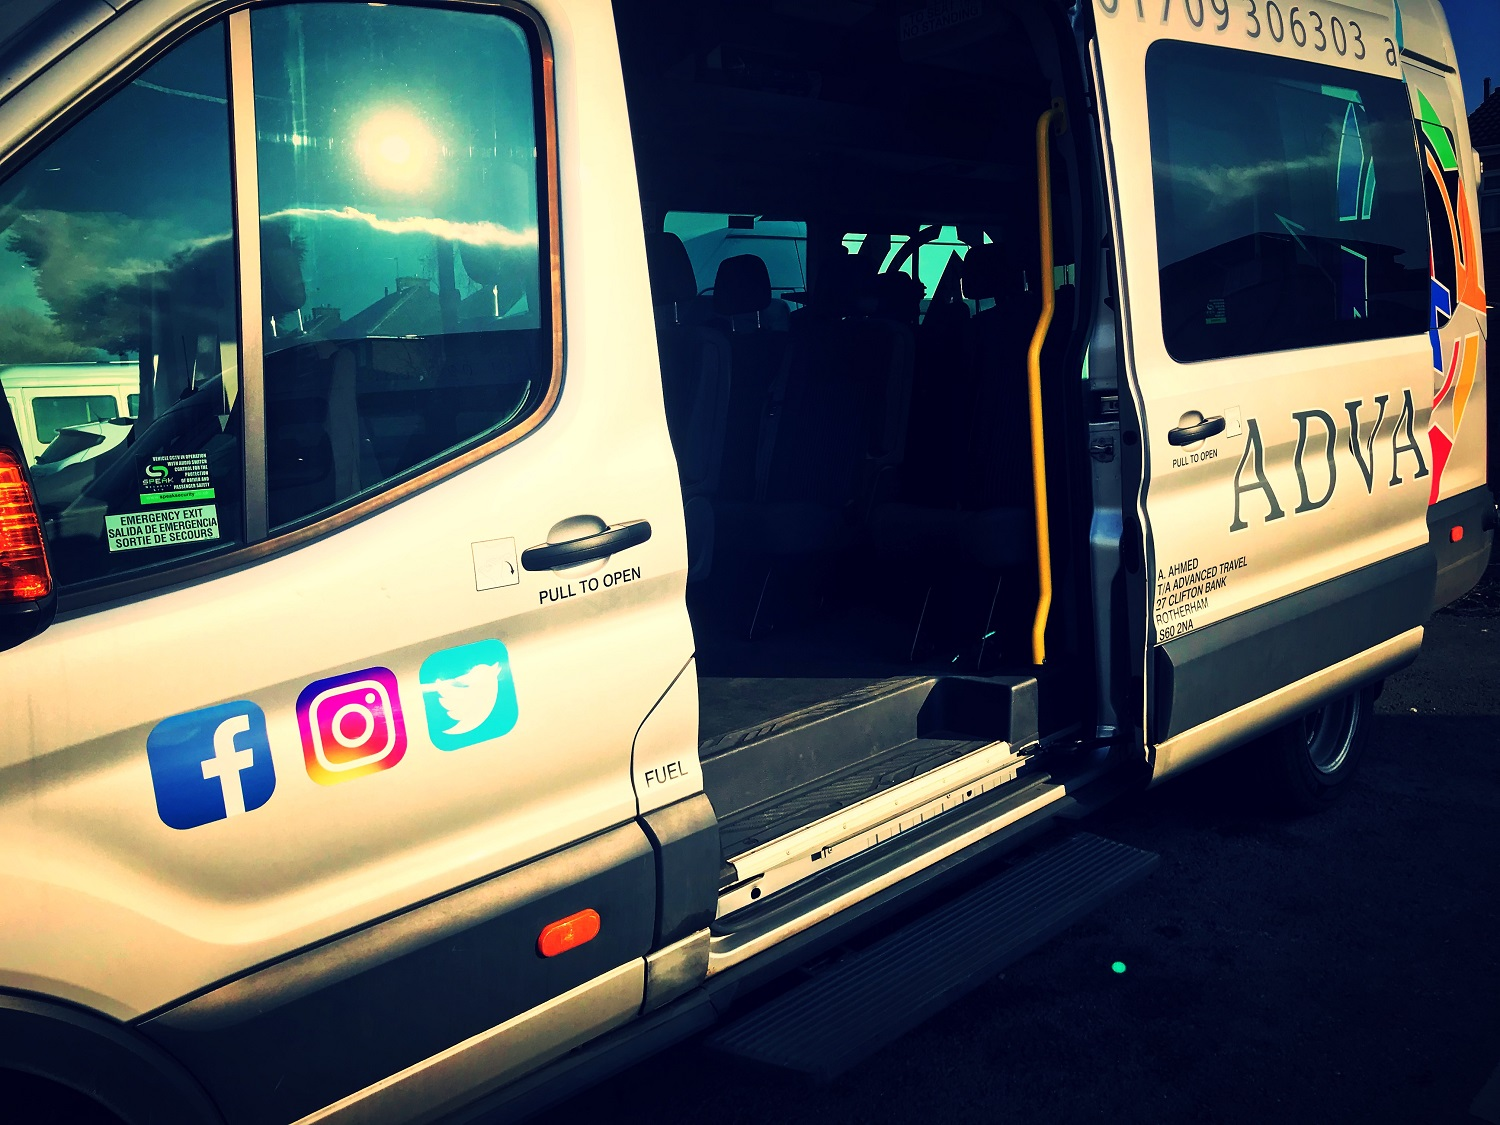 The sliding passenger door of our 16 Seater Ford Transit minibus, with electric lowered step and safety handrail.